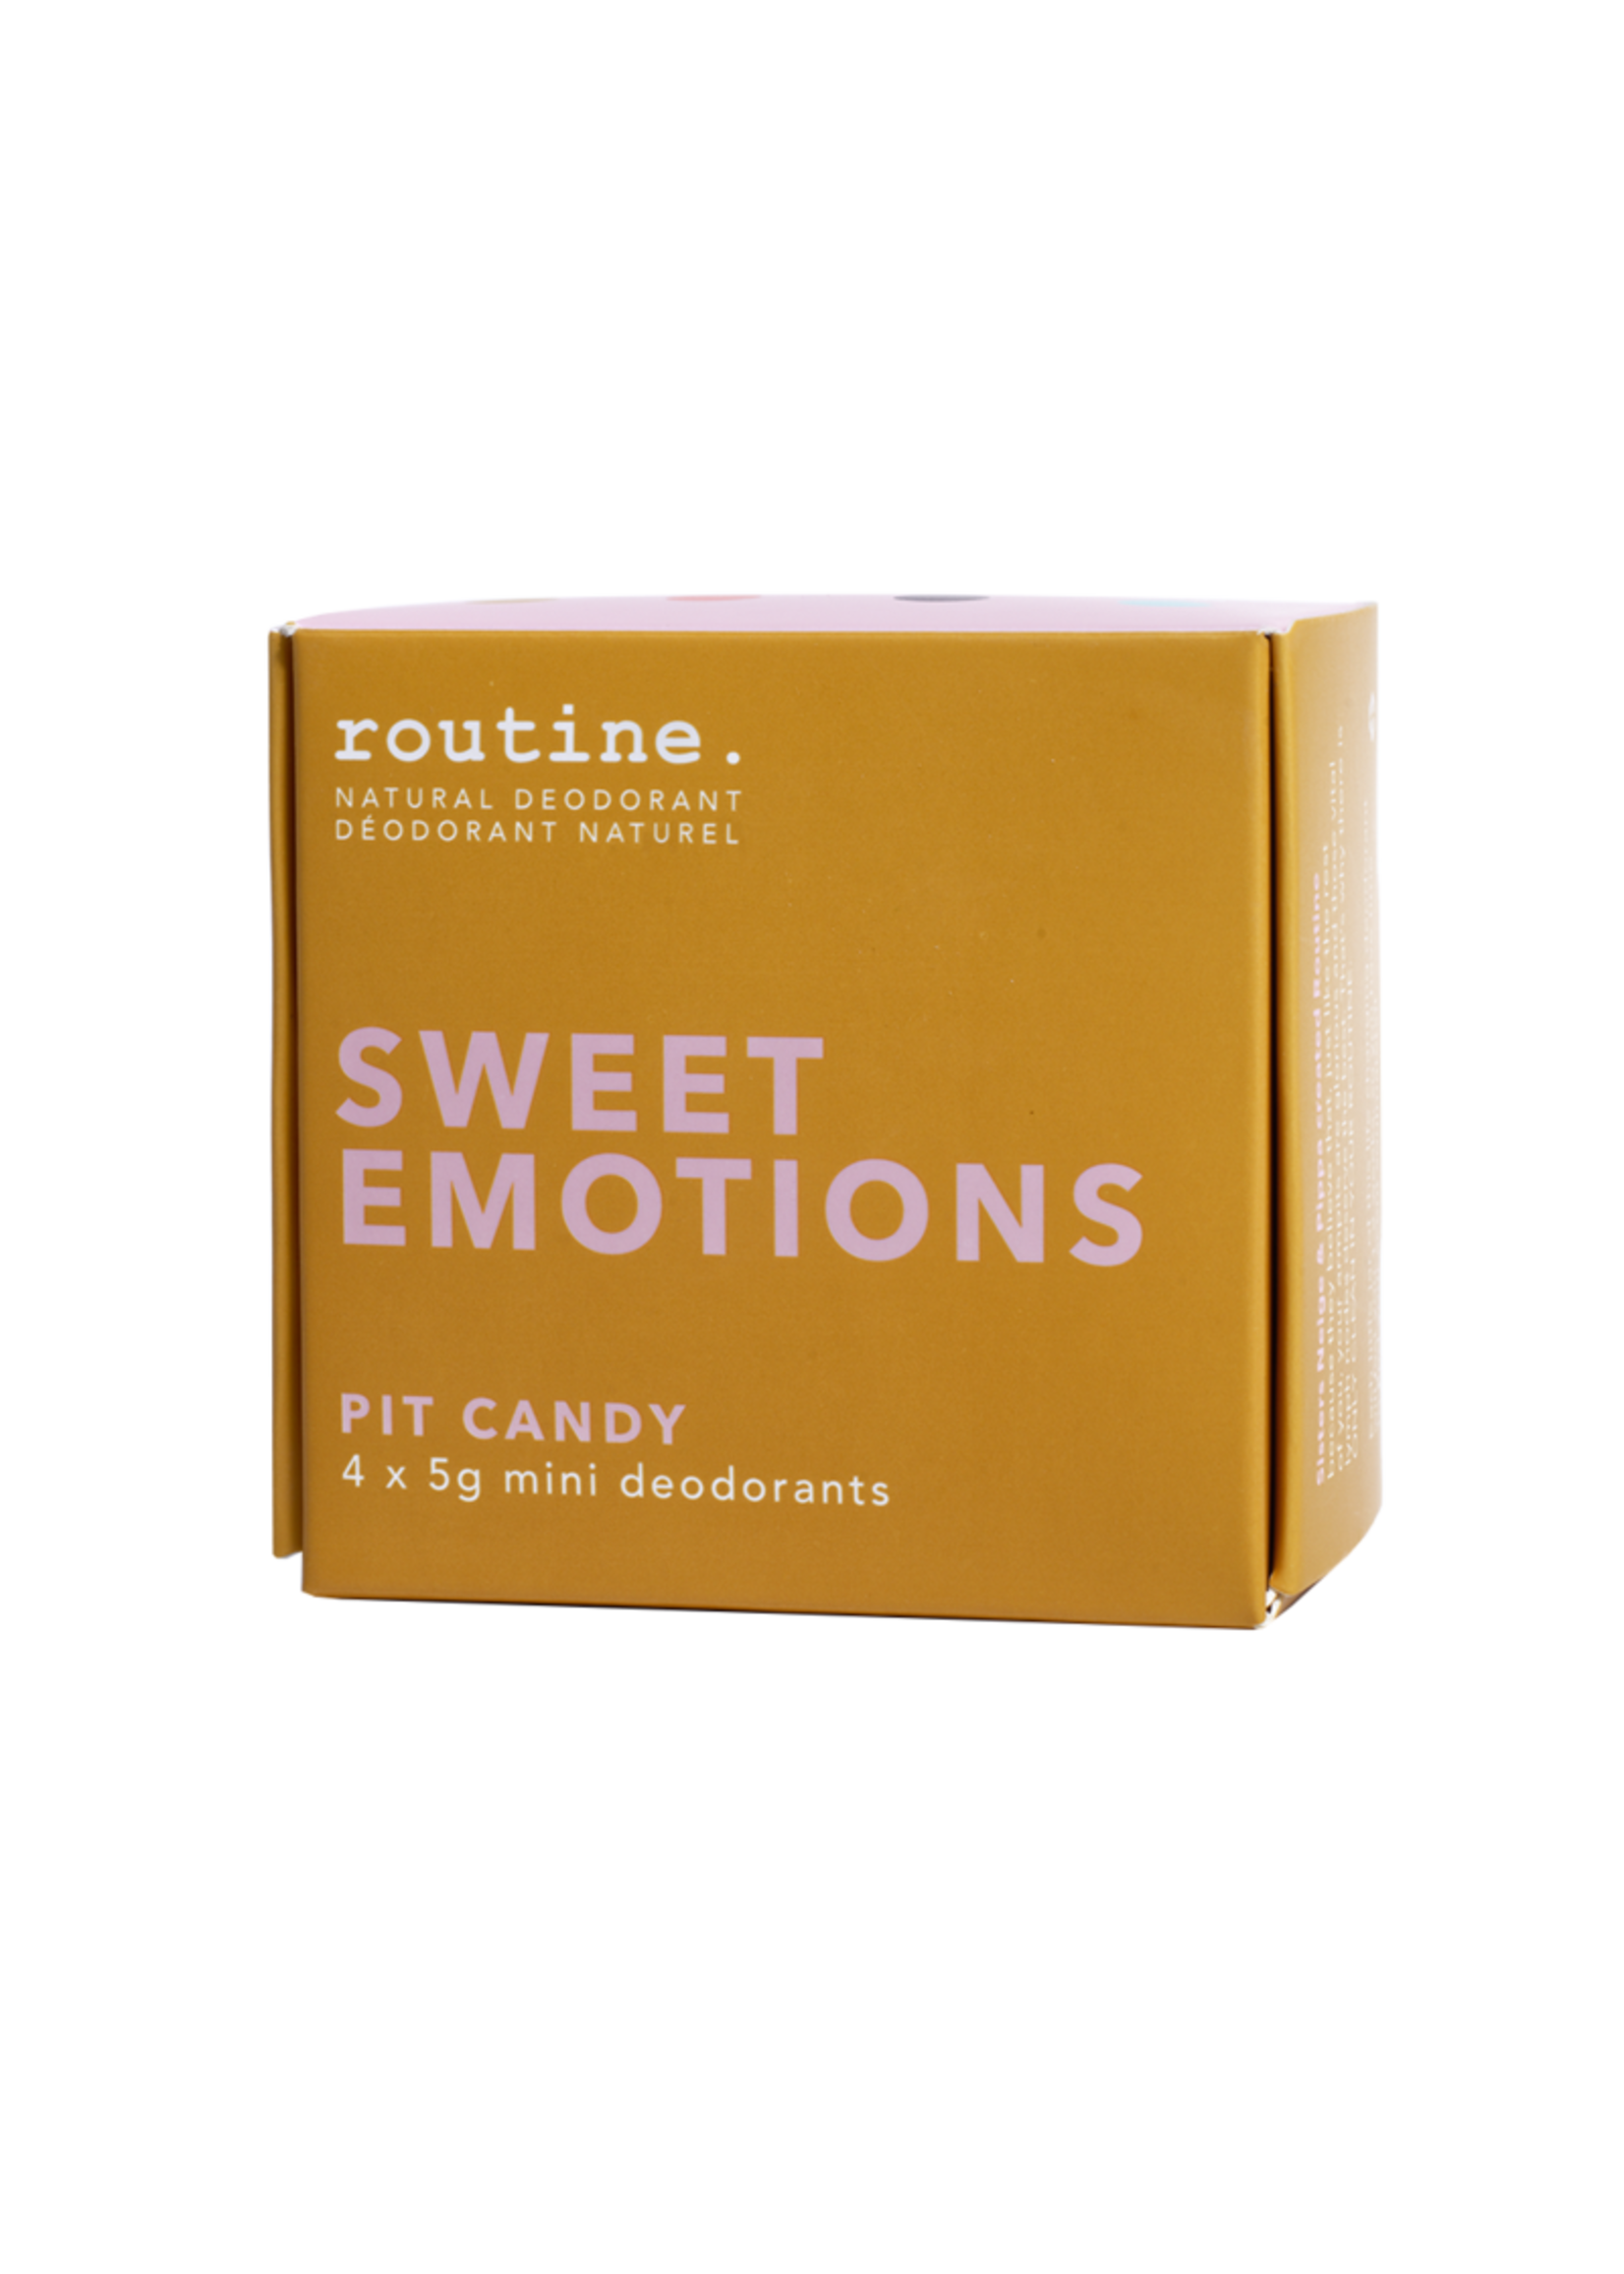 Routine ROUTINE-SWEET EMOTIONS MINIS KIT 4X5G